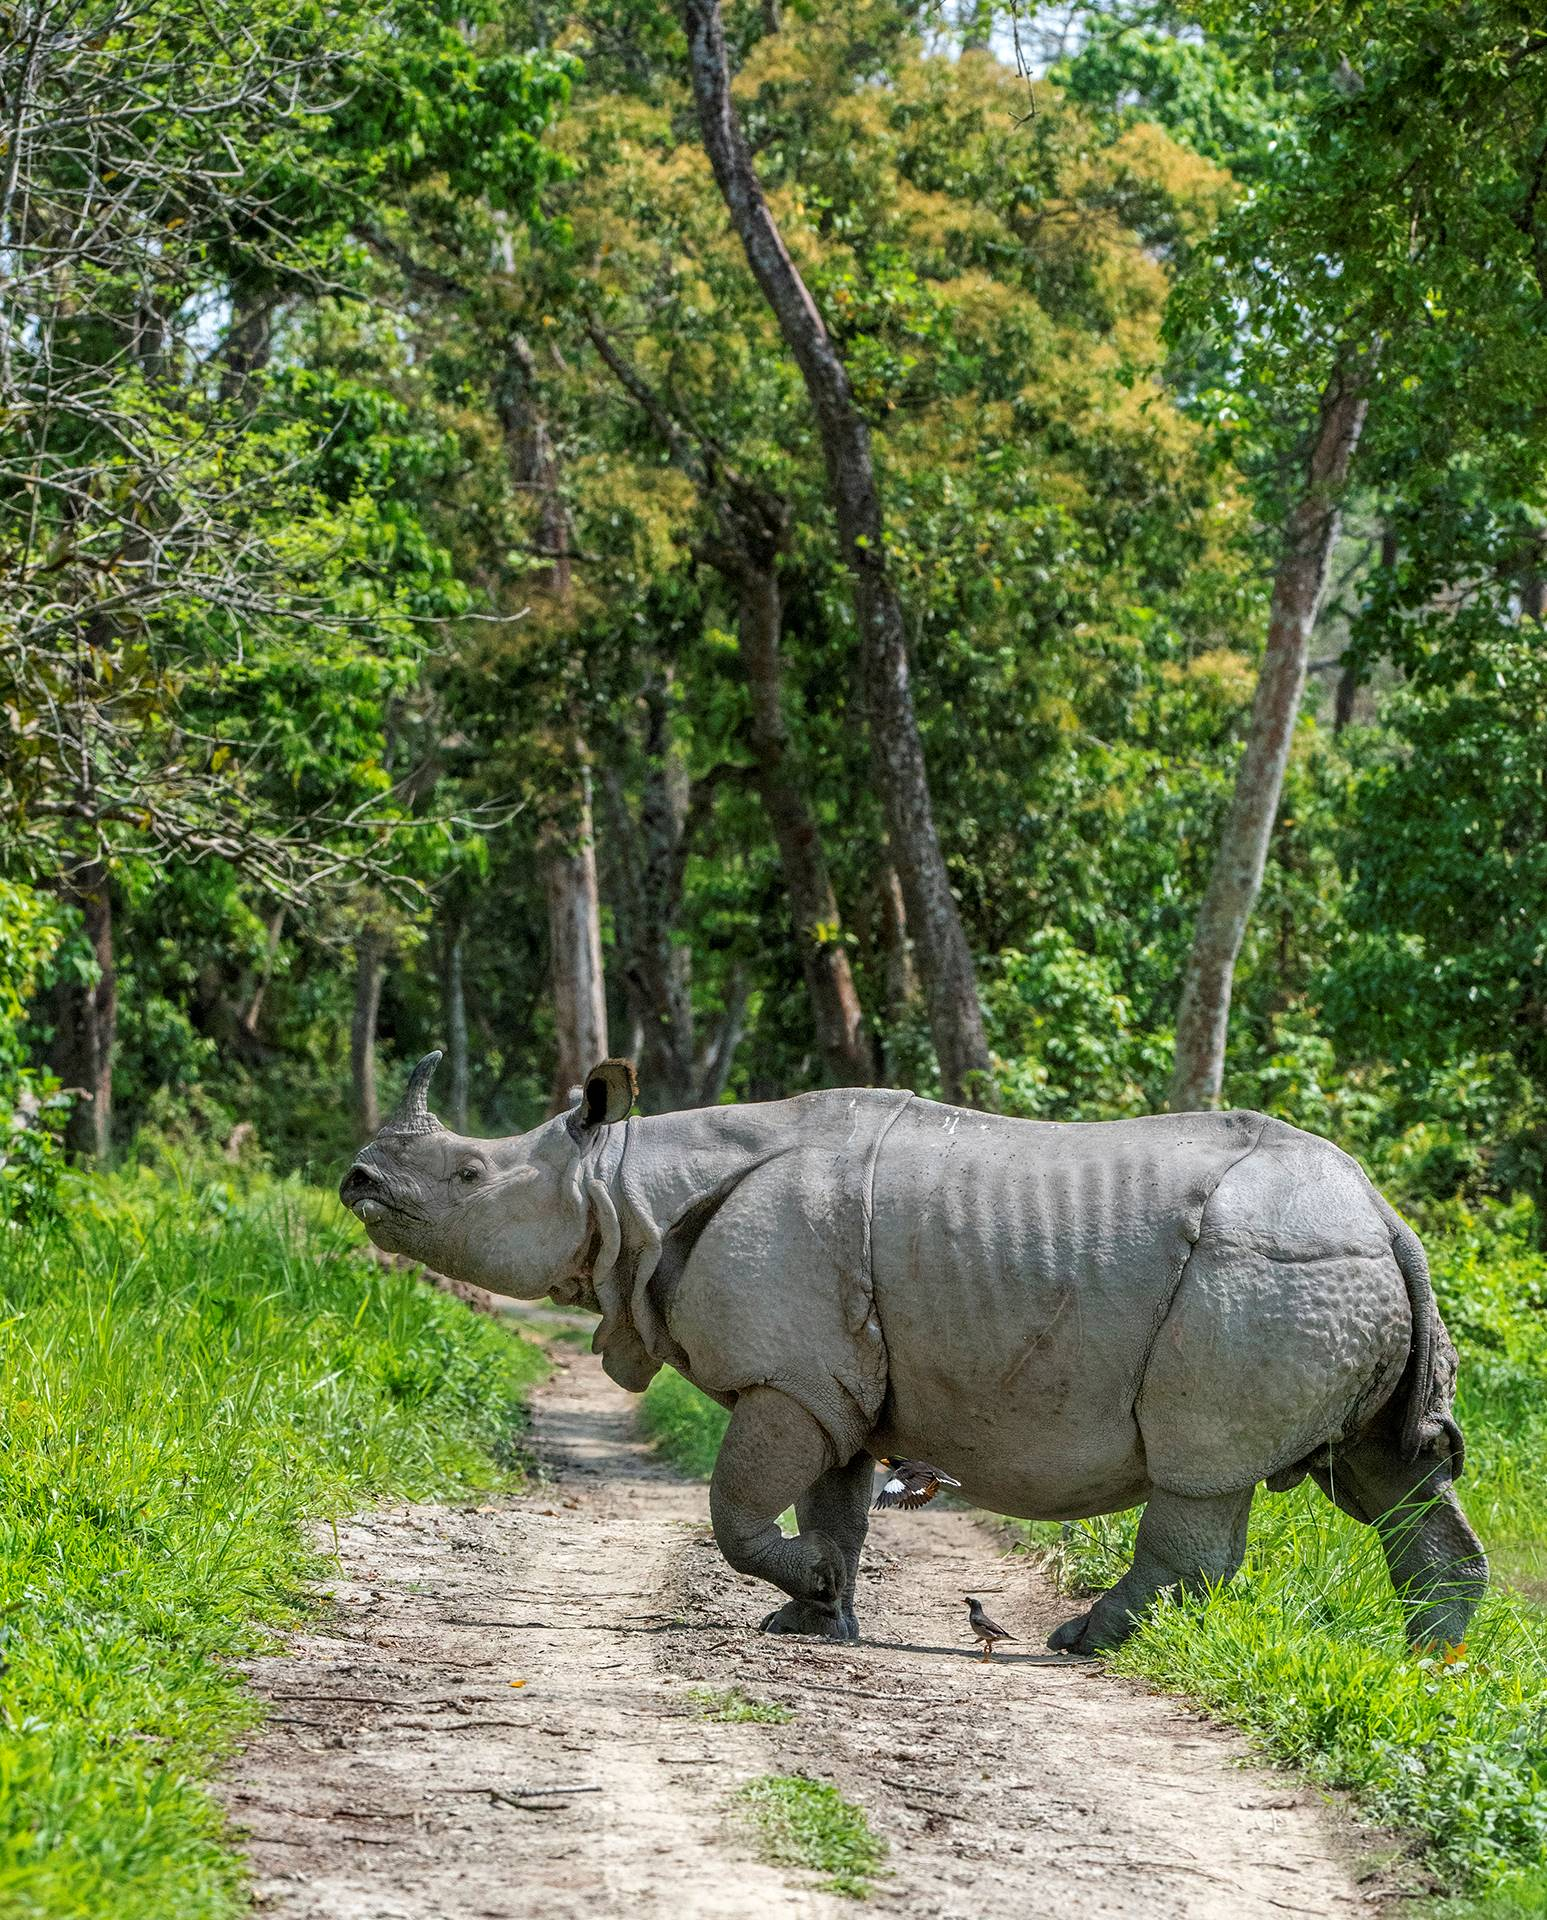 The world's largest population of the greater one-horned rhino can be found in Kaziranga National Park. According to the 2018 census, 2,413 rhinos live in the park. Photo: Udayan Borthakur